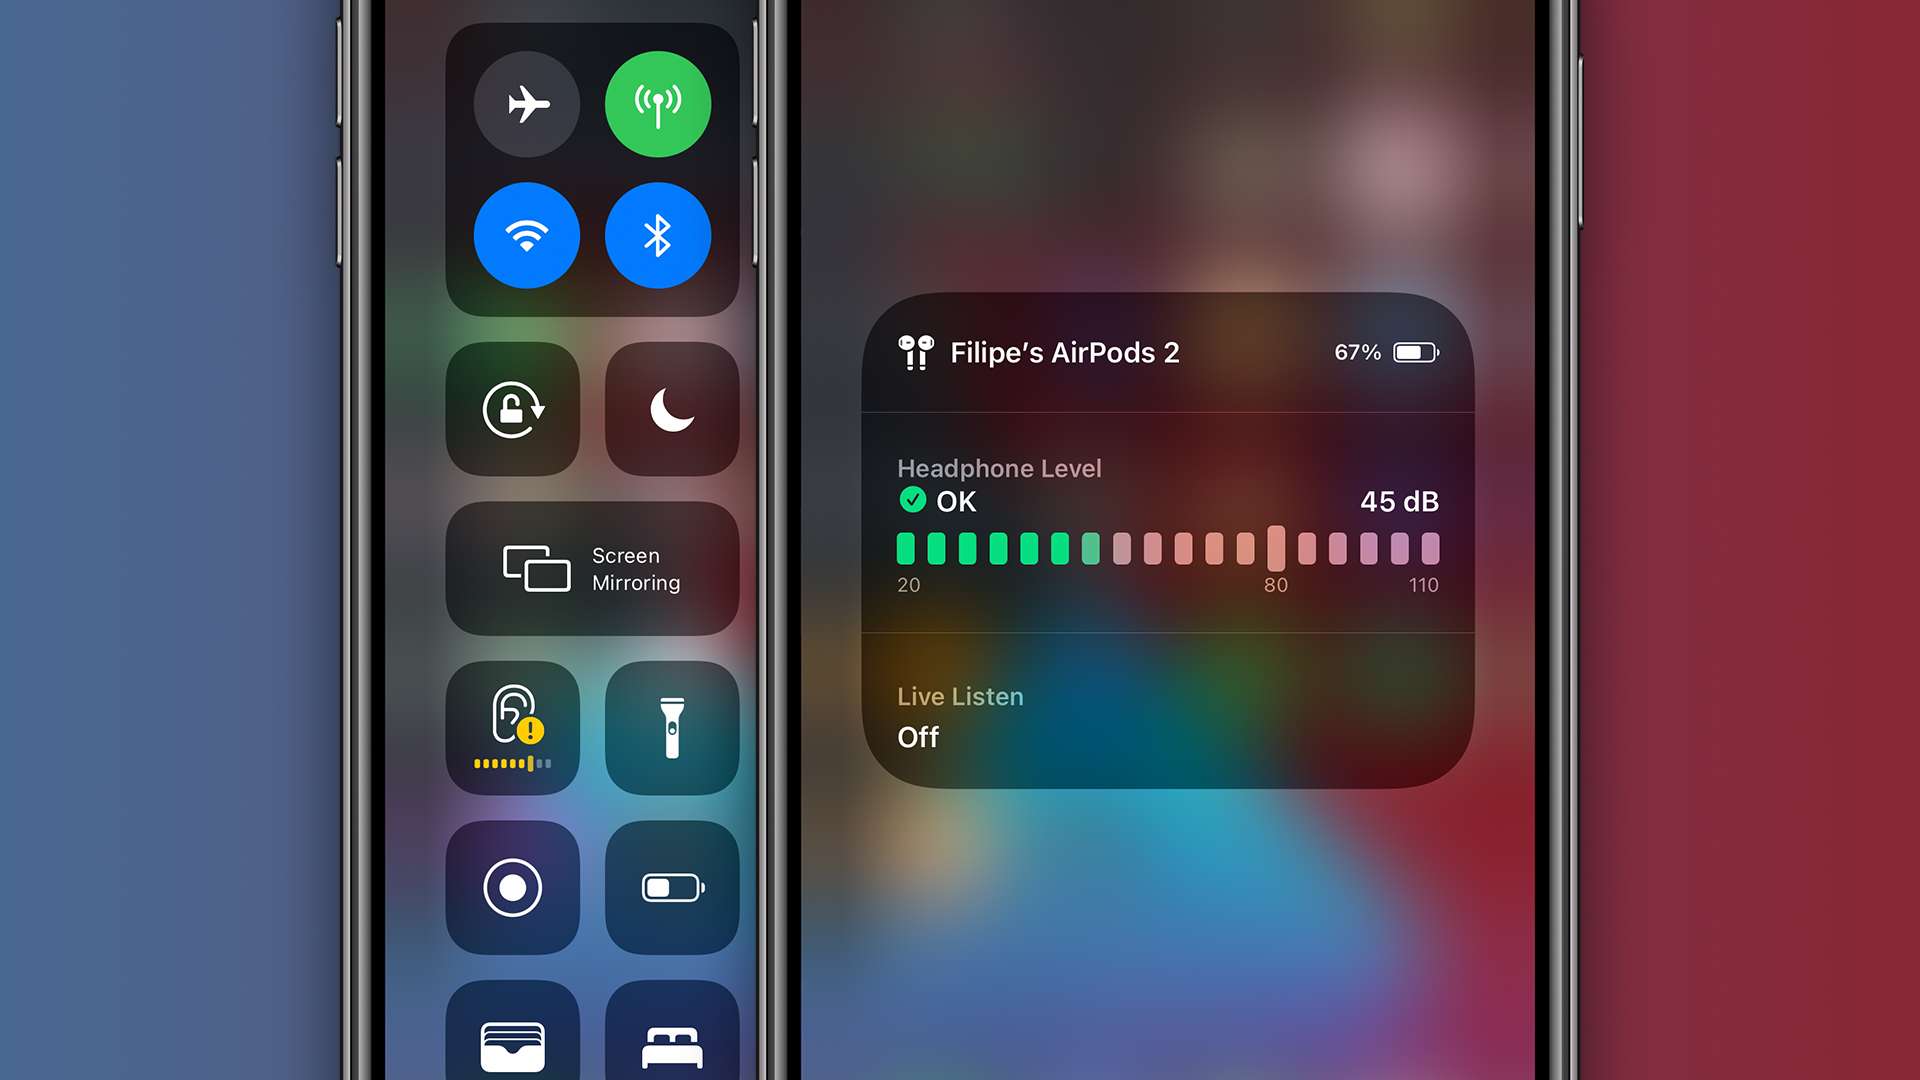 Ios 14 Features Real Time Headphone Audio Level Measurements Here S How To Enable It 9to5mac